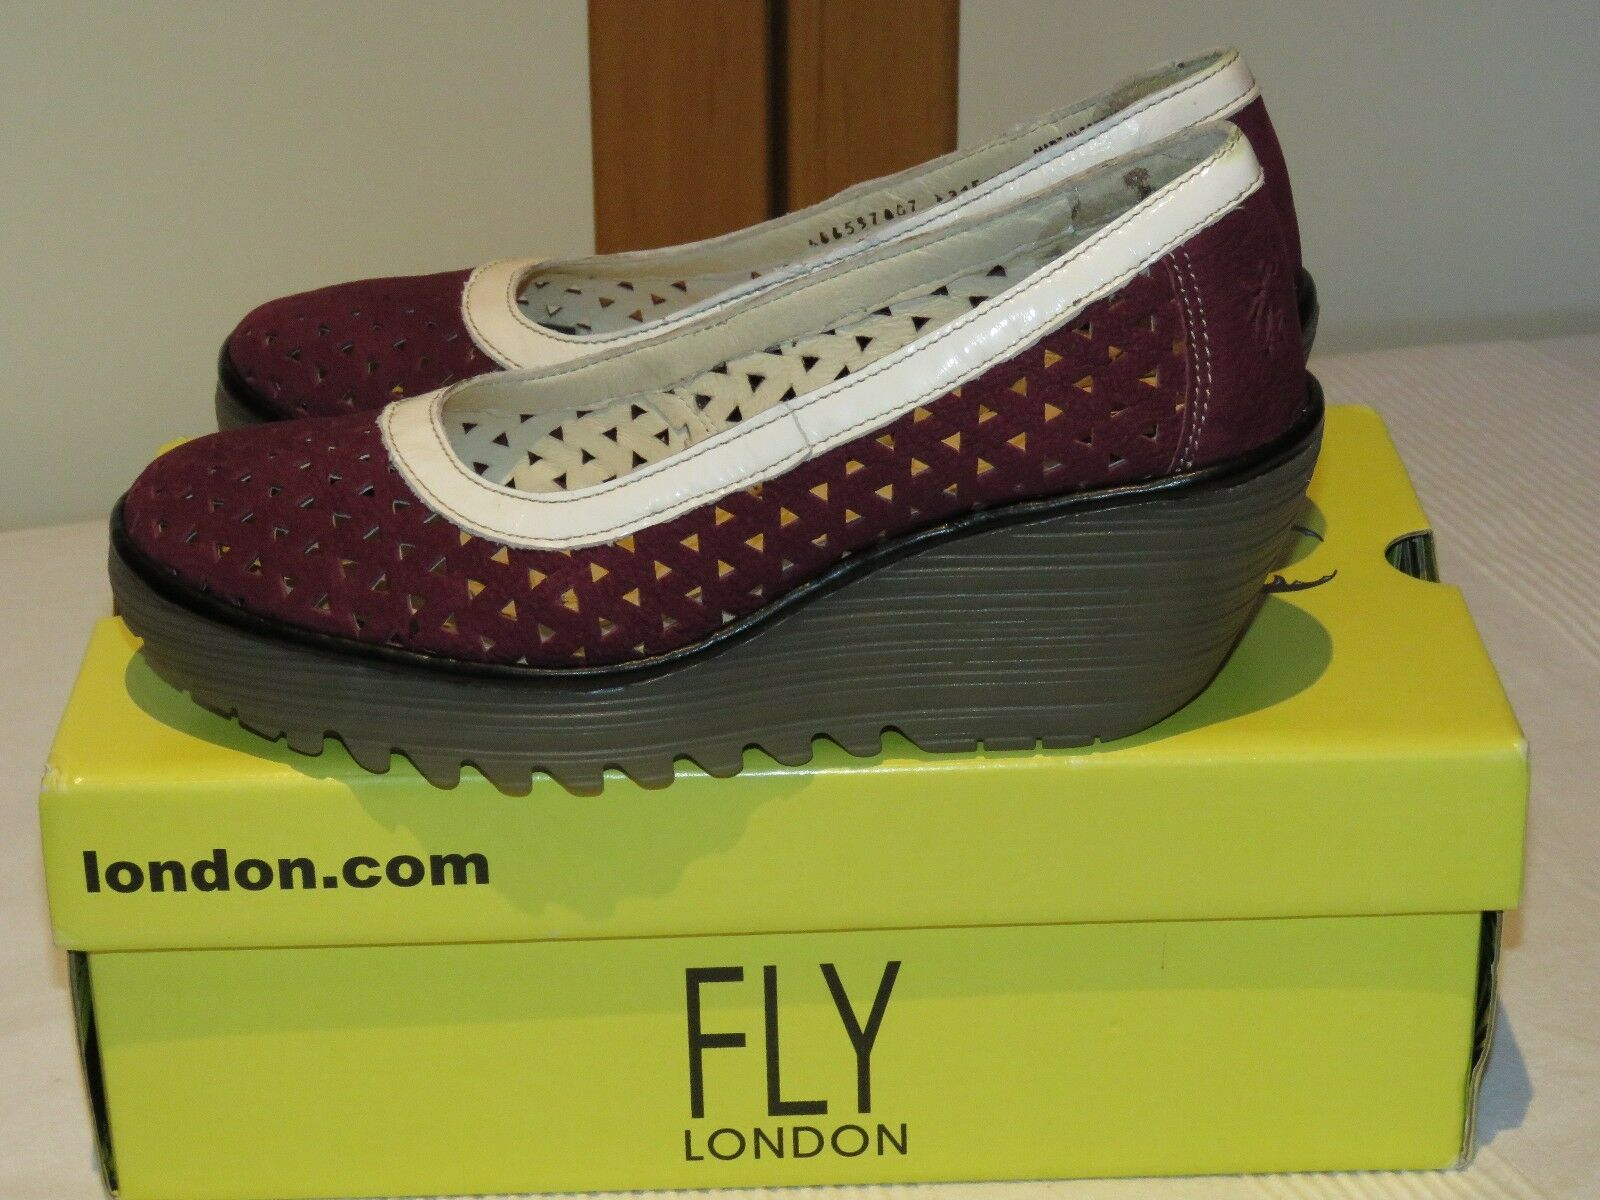 FLY LONDON YARE597FLY CUPIDO LEATHER LEATHER CUPIDO COURT Schuhe WEDGES UK 5 EUR 38 e4bf7b